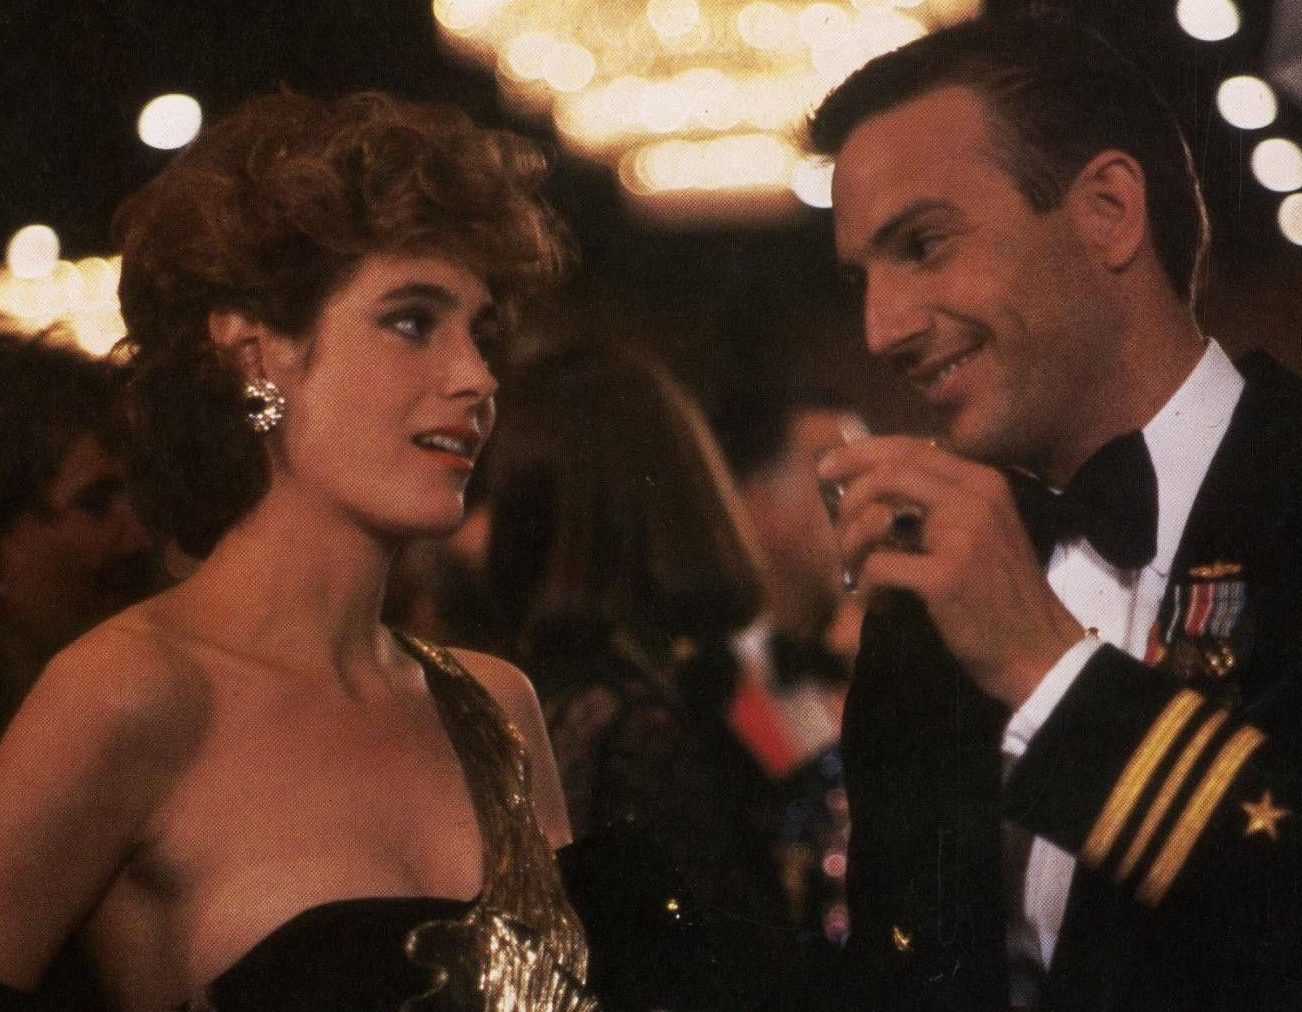 c26d546a904439999fe88e83e2b4a135 e1612368777695 The Spectacular Rise and Catastrophic Fall of Sean Young